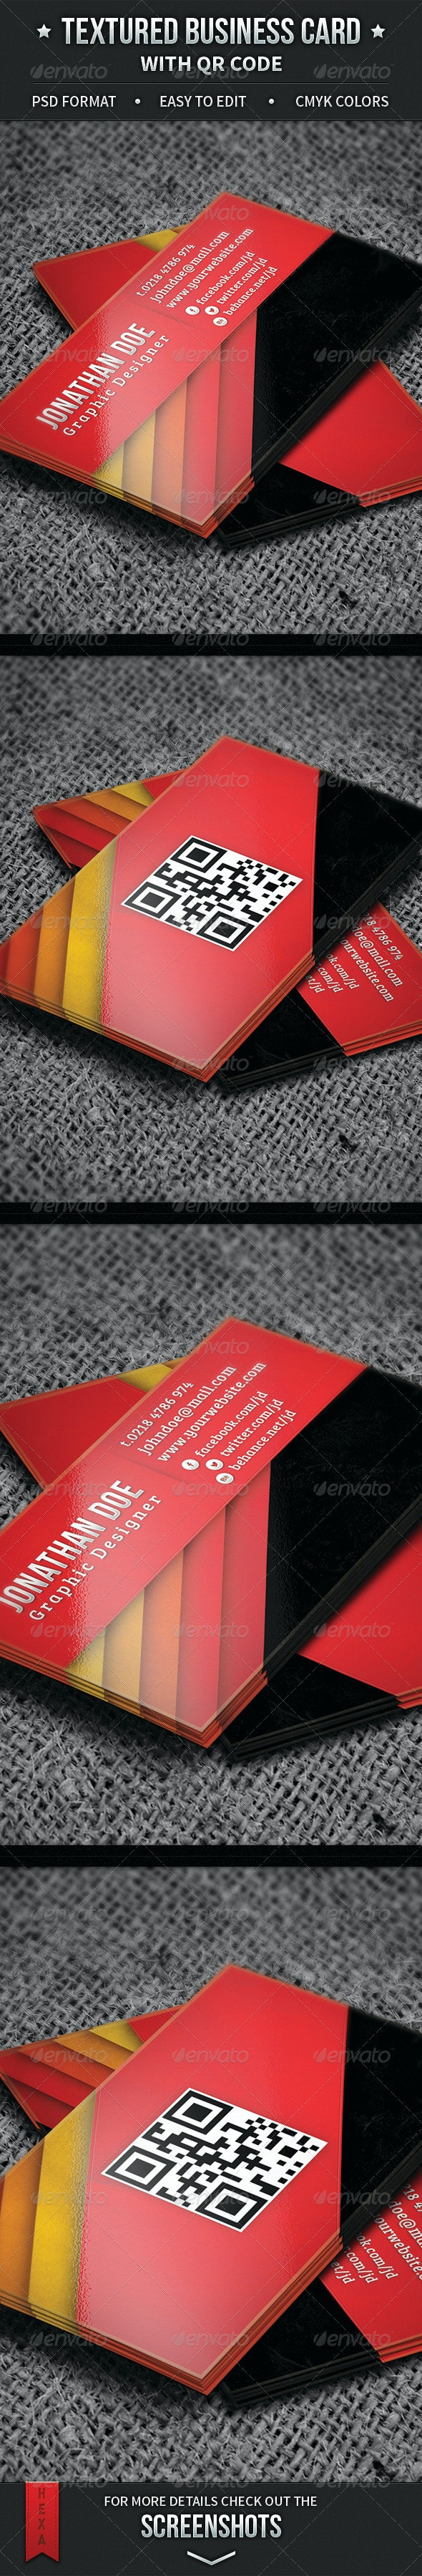 Textured Business Card with QR Code - Creative Business Cards